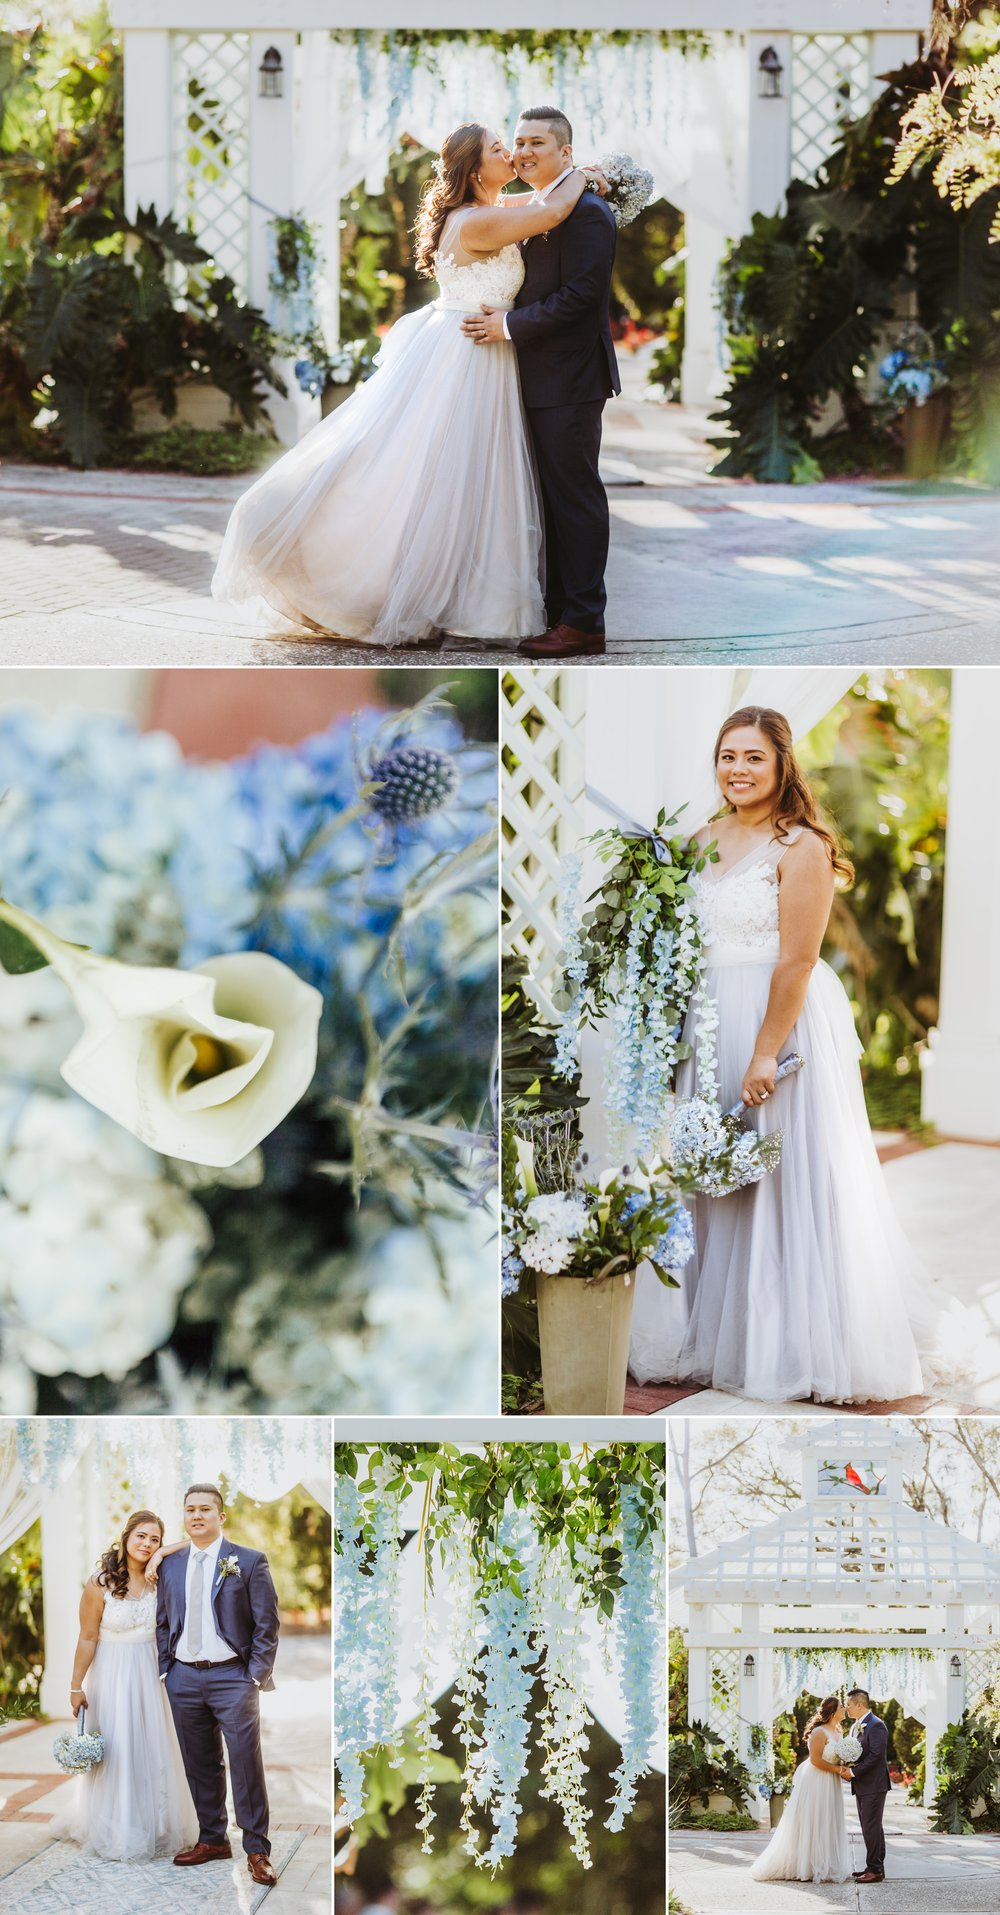 Romantic Leu Gardens Wedding Pictures - Winter Park Wedding Photographer Shaina DeCiryan- Effie+Phillip7.jpg